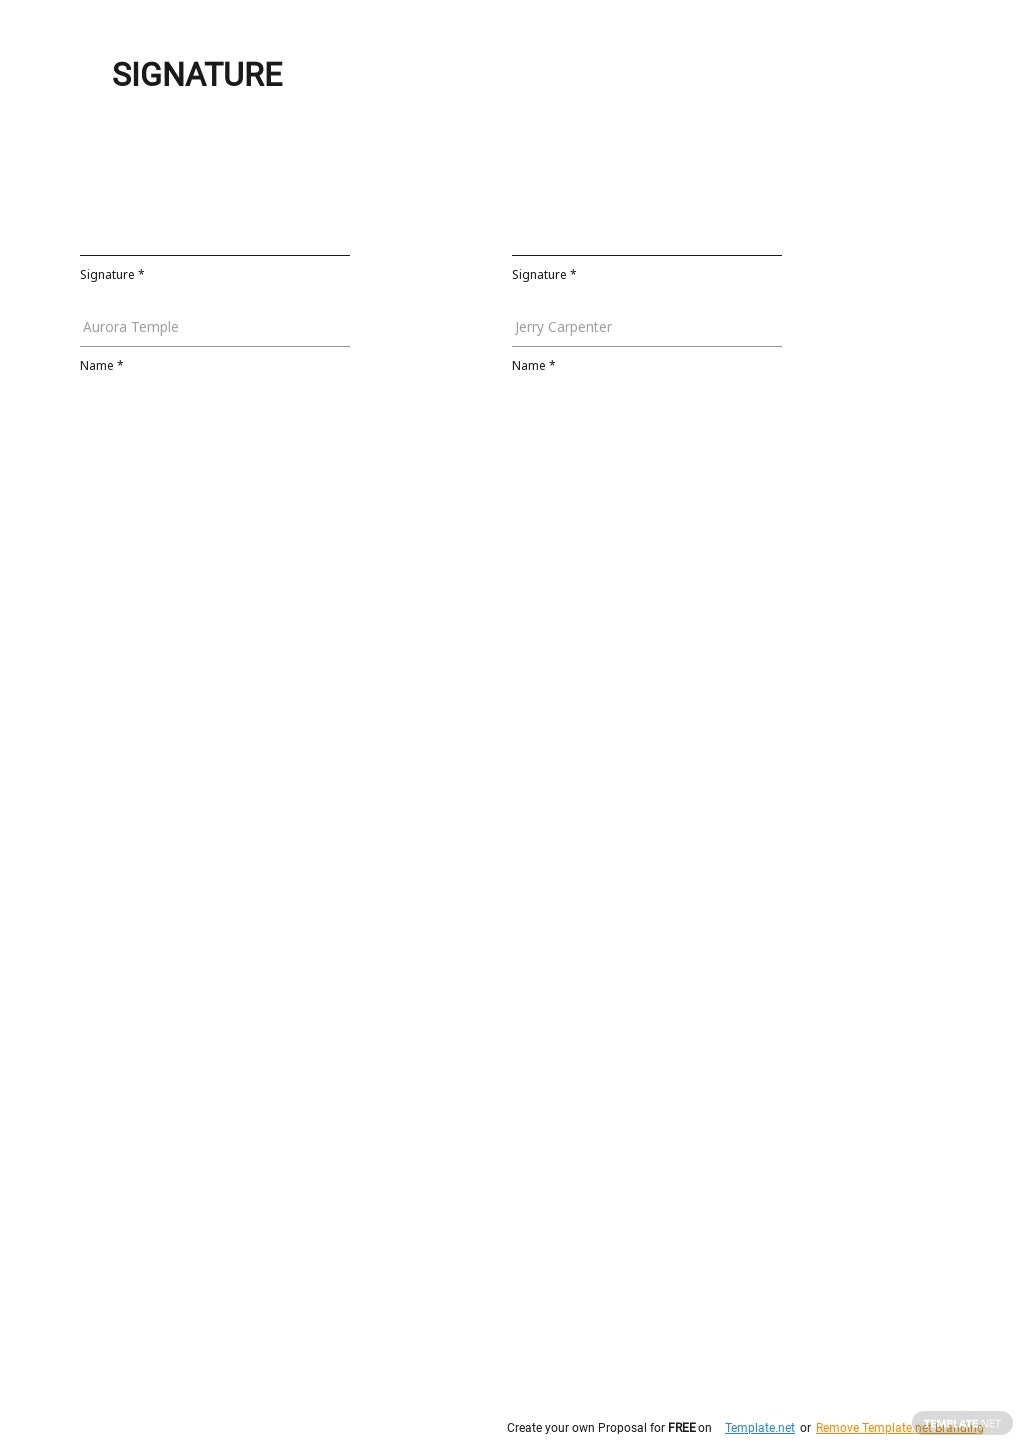 Rental Agreement or Residential Lease Template 2.jpe